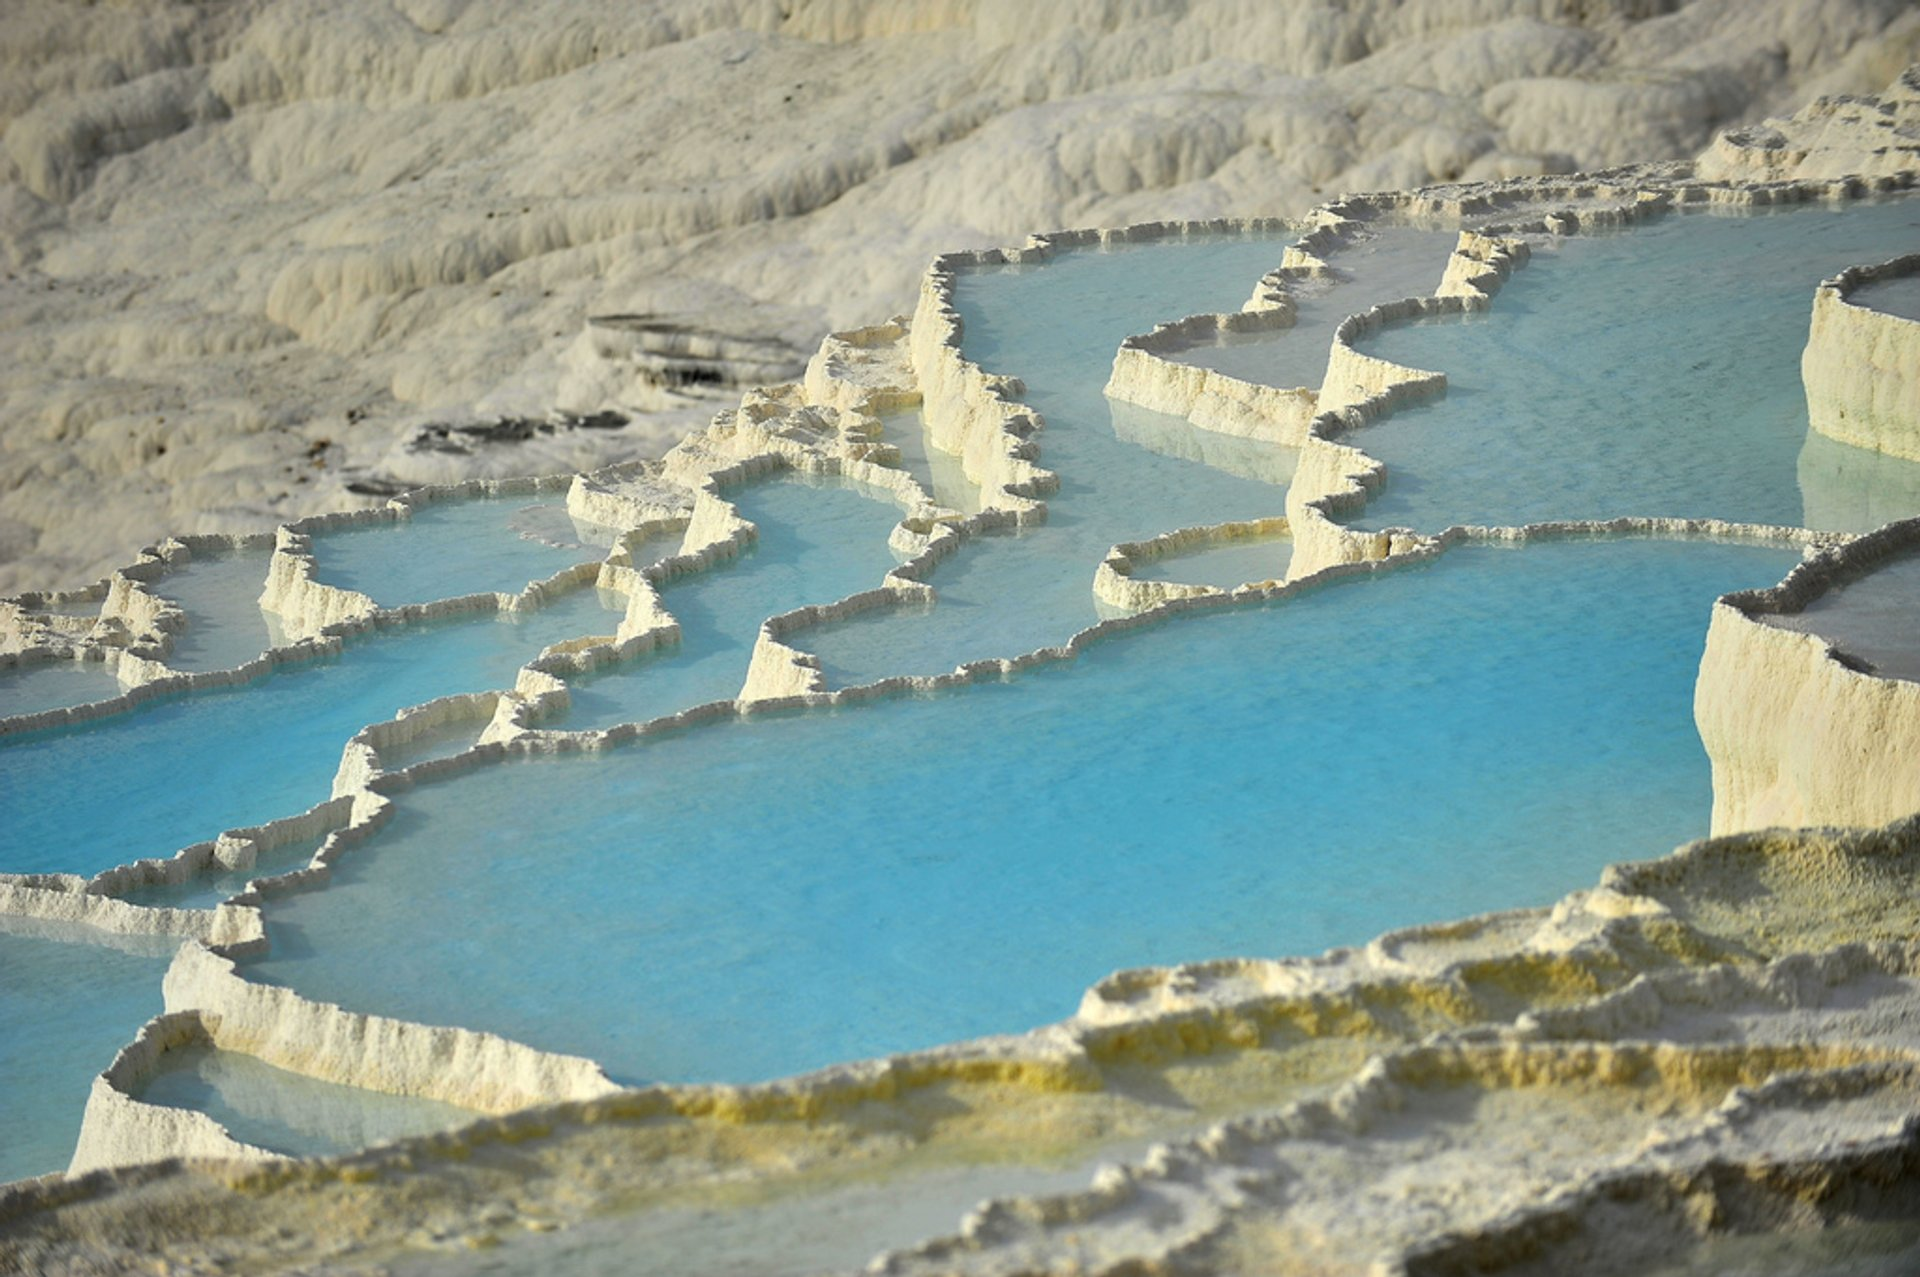 Pamukkale (Hierapolis) Thermal Pools in Turkey 2020 - Best Time